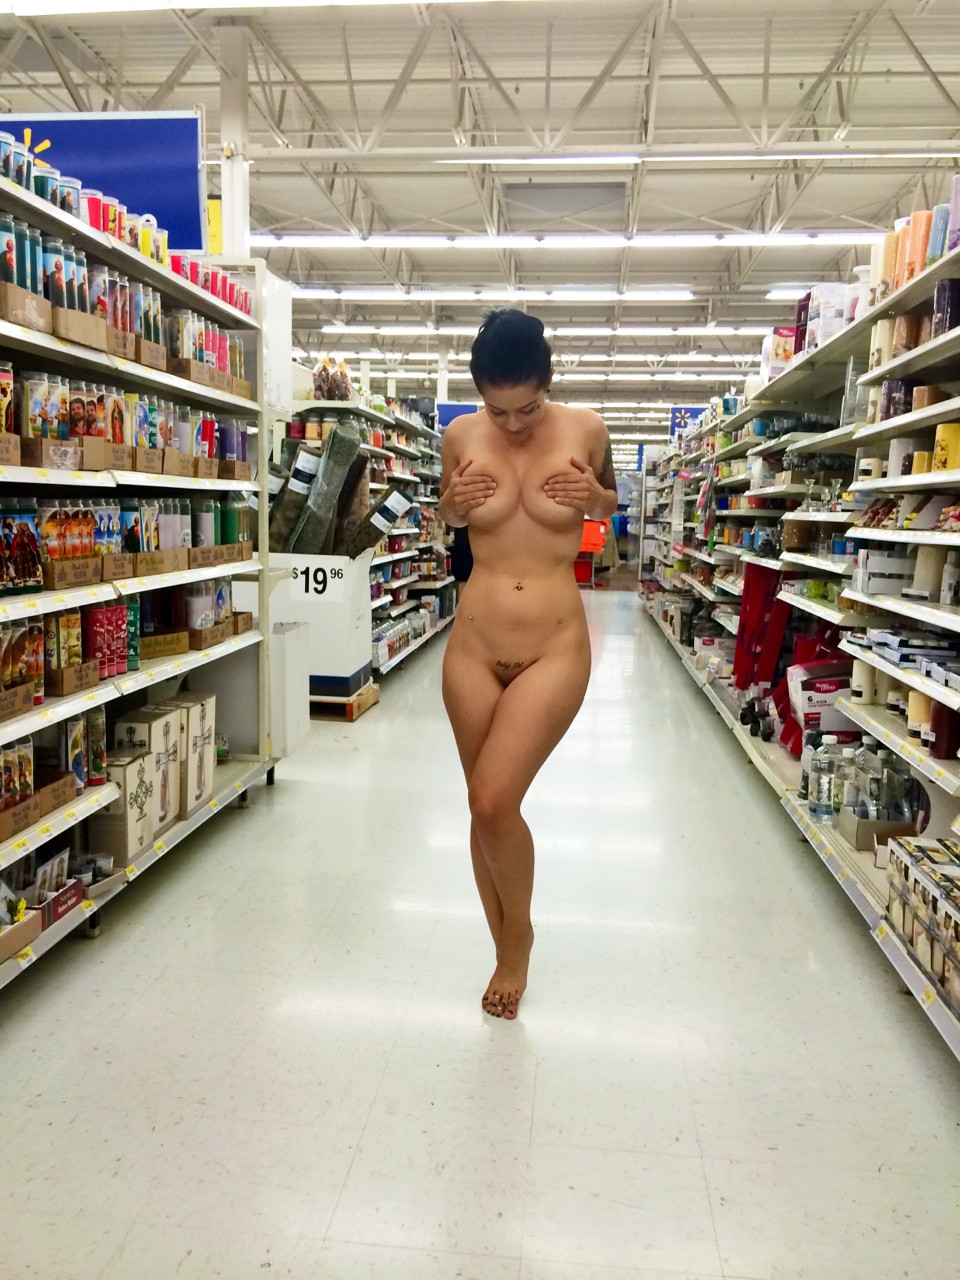 Naked In Walmart